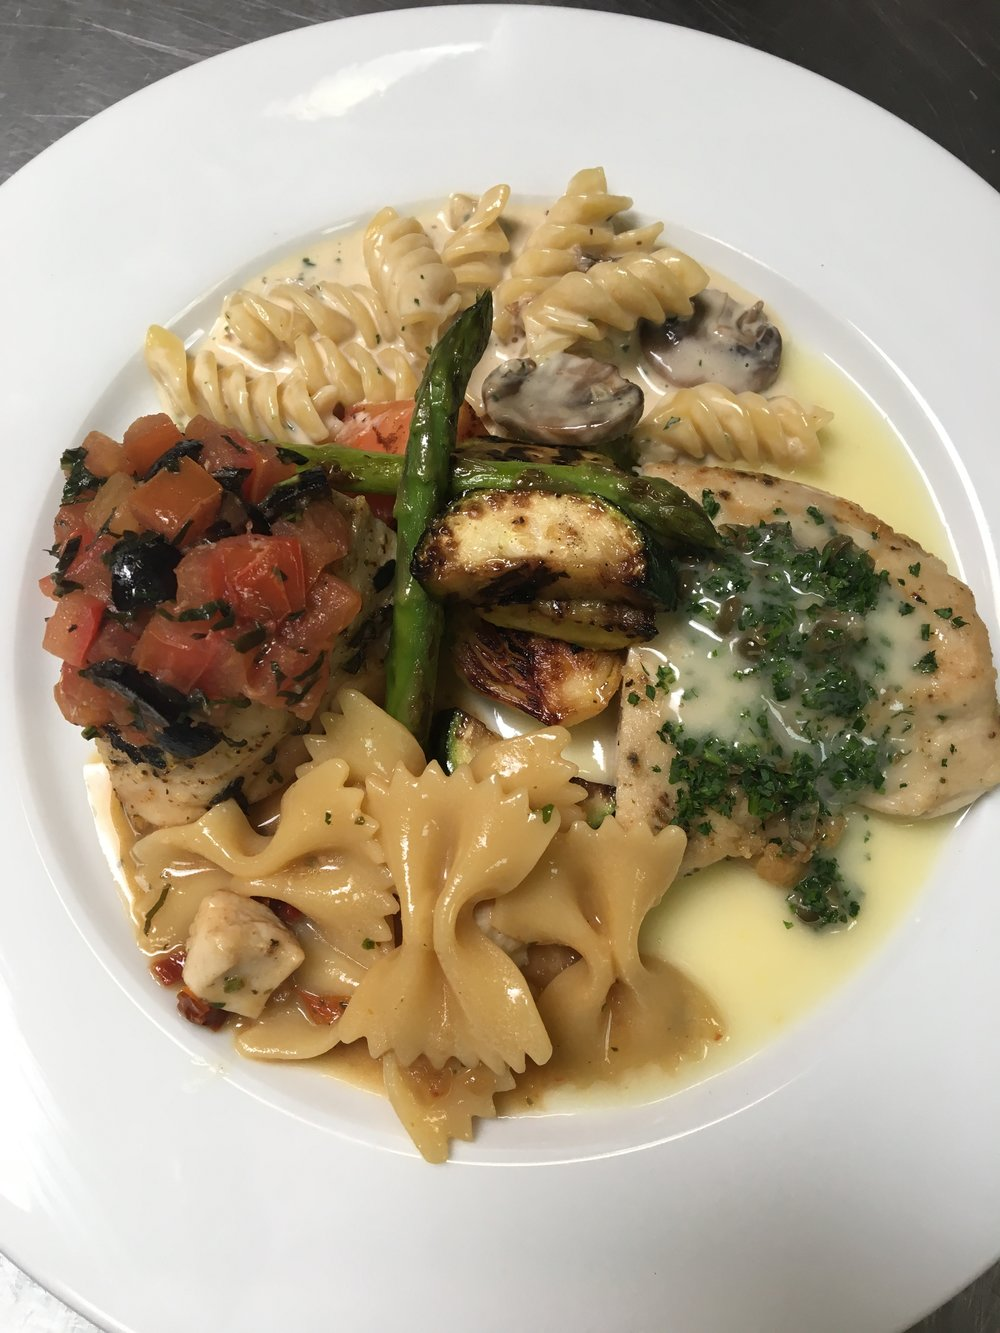 Herb Chicken Breast, Chicken Piccata, Porcini Pasta, Pasta Primavera, and Grilled Vegetables